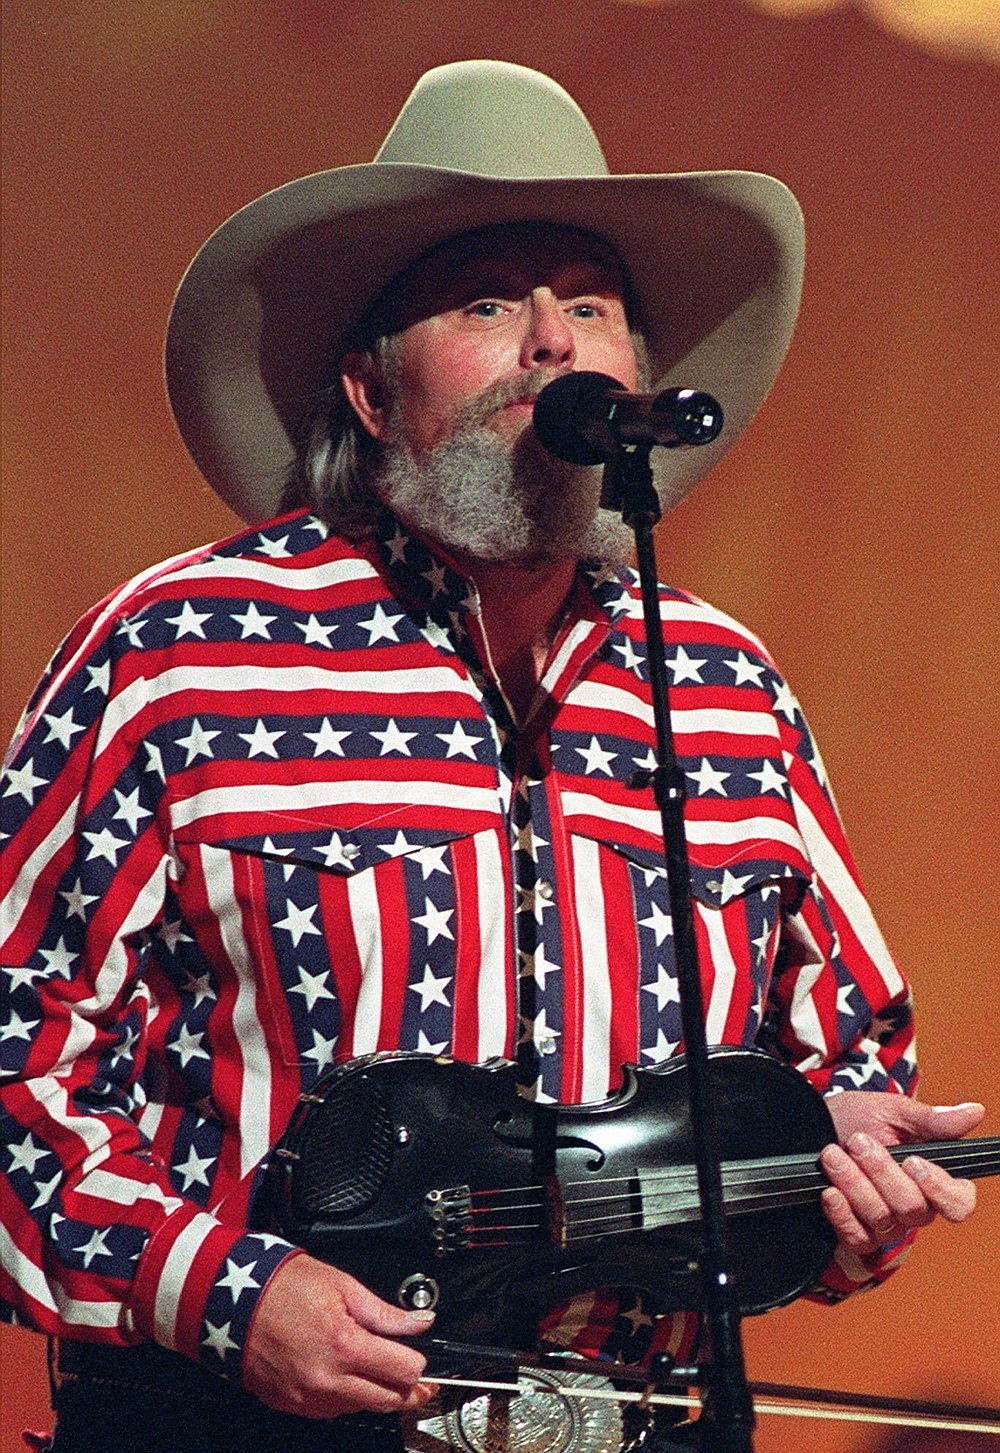 """FILE - Singer Charlie Daniels performs in Nashville, Tenn., on May 7, 1992. Daniels, who had a hit with """"Devil Went Down to Georgia"""" has died at age 83. A statement from his publicist said the Country Music Hall of Famer died Monday due to a hemorrhagic stroke. (AP Photo)"""